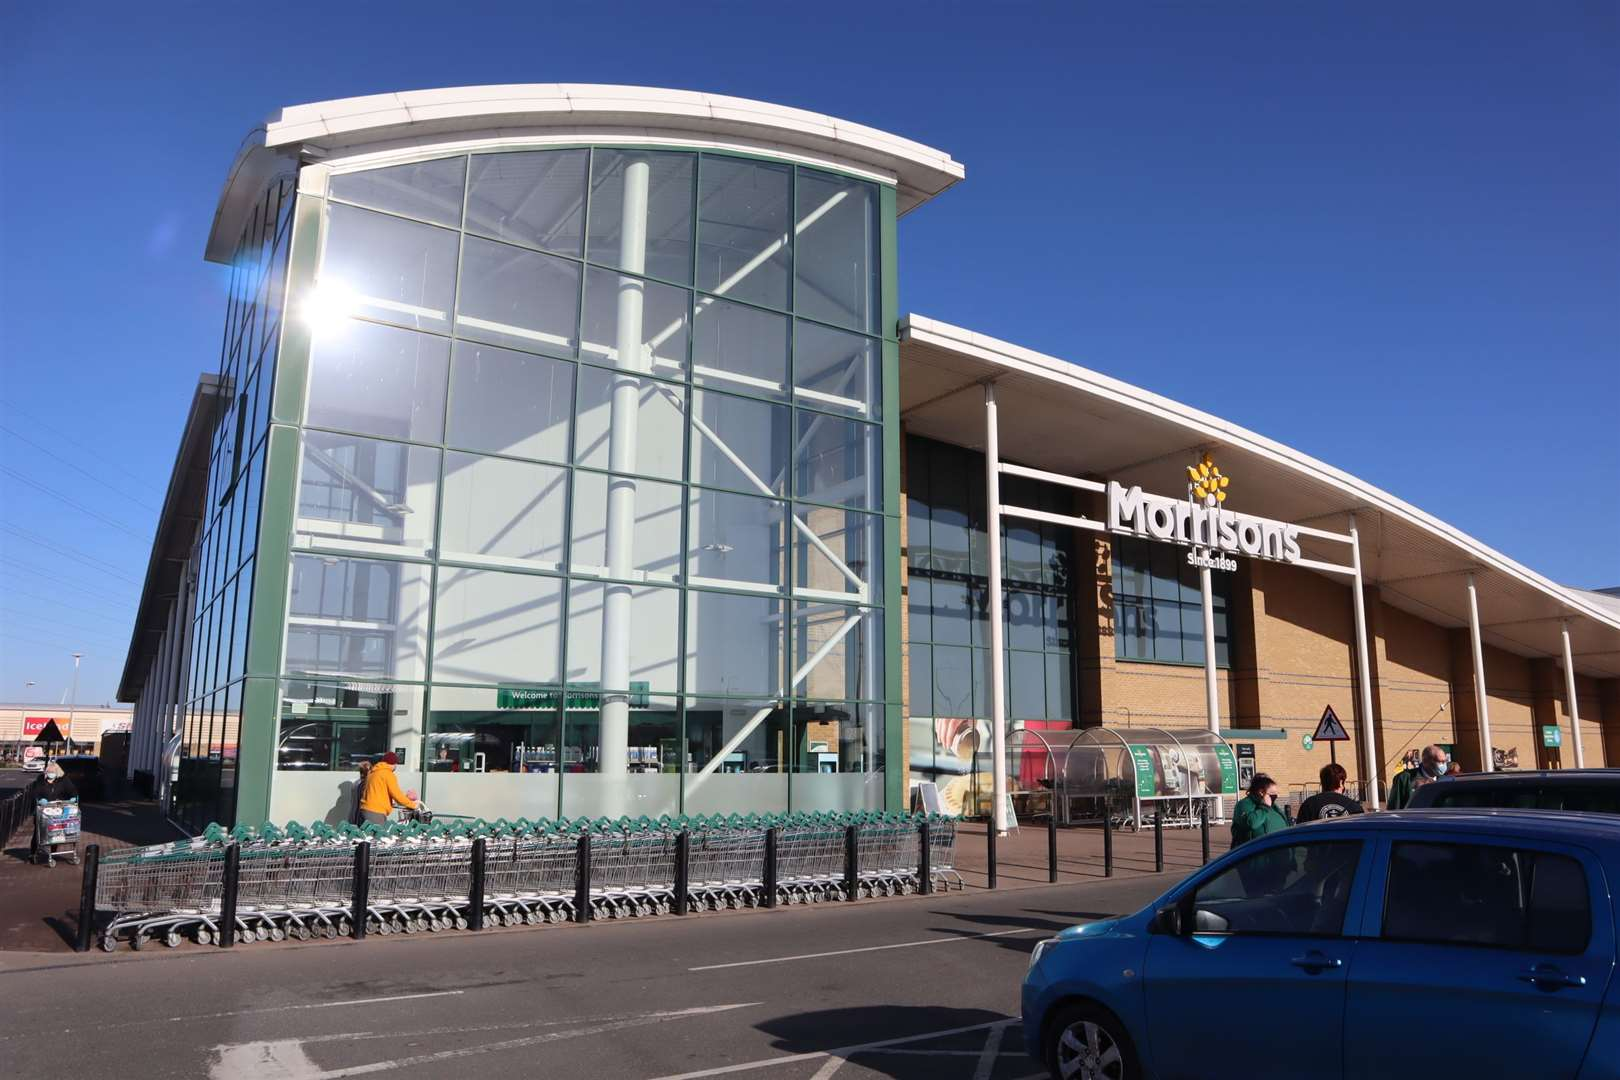 The email, pretending to be from Morrisons, offers to enter customers into a free prize draw